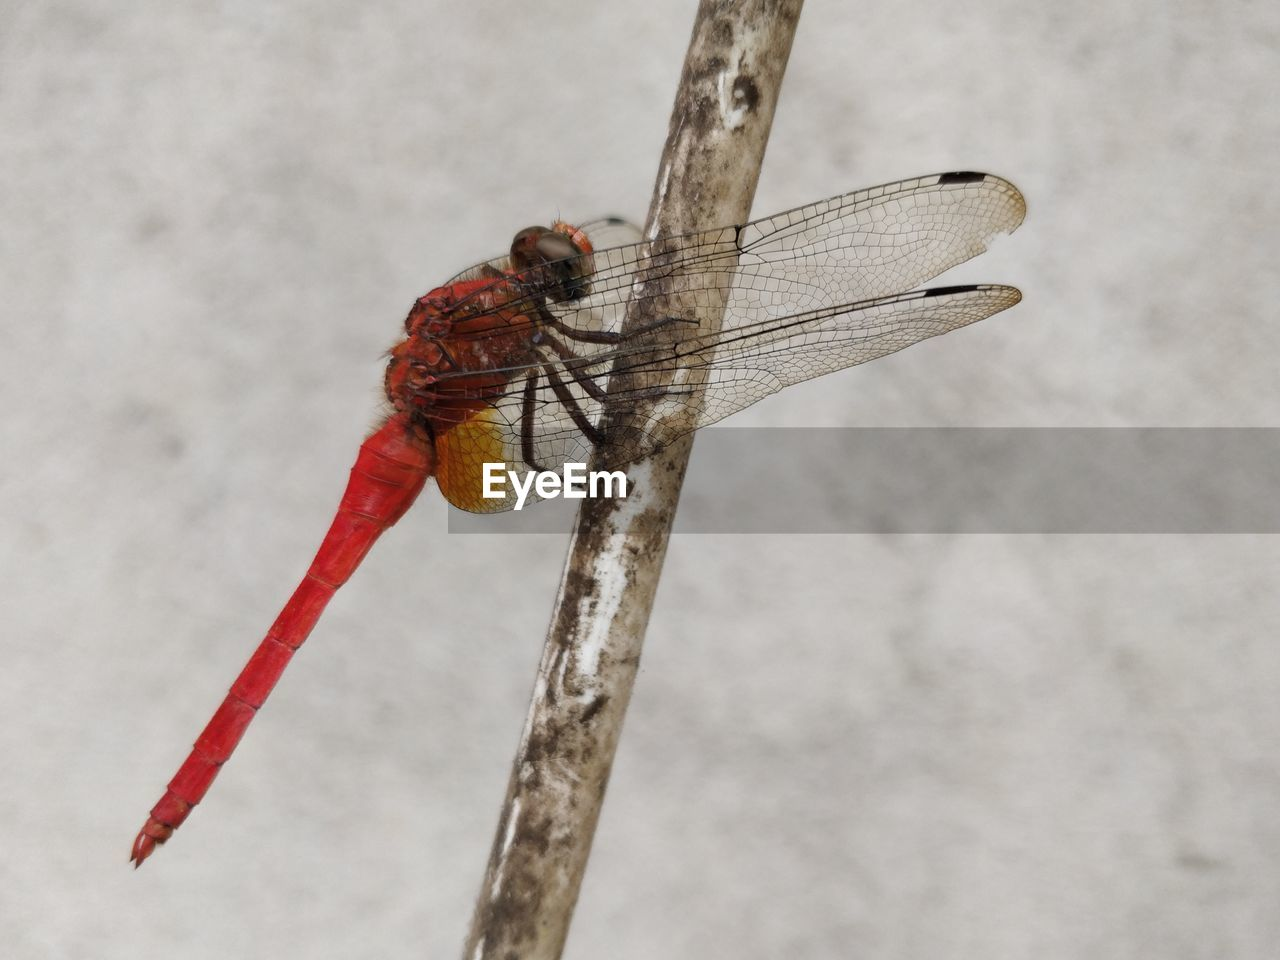 invertebrate, animal themes, insect, animal wildlife, animals in the wild, animal, one animal, animal wing, dragonfly, close-up, focus on foreground, nature, day, no people, outdoors, twig, zoology, wall - building feature, side view, red, animal eye